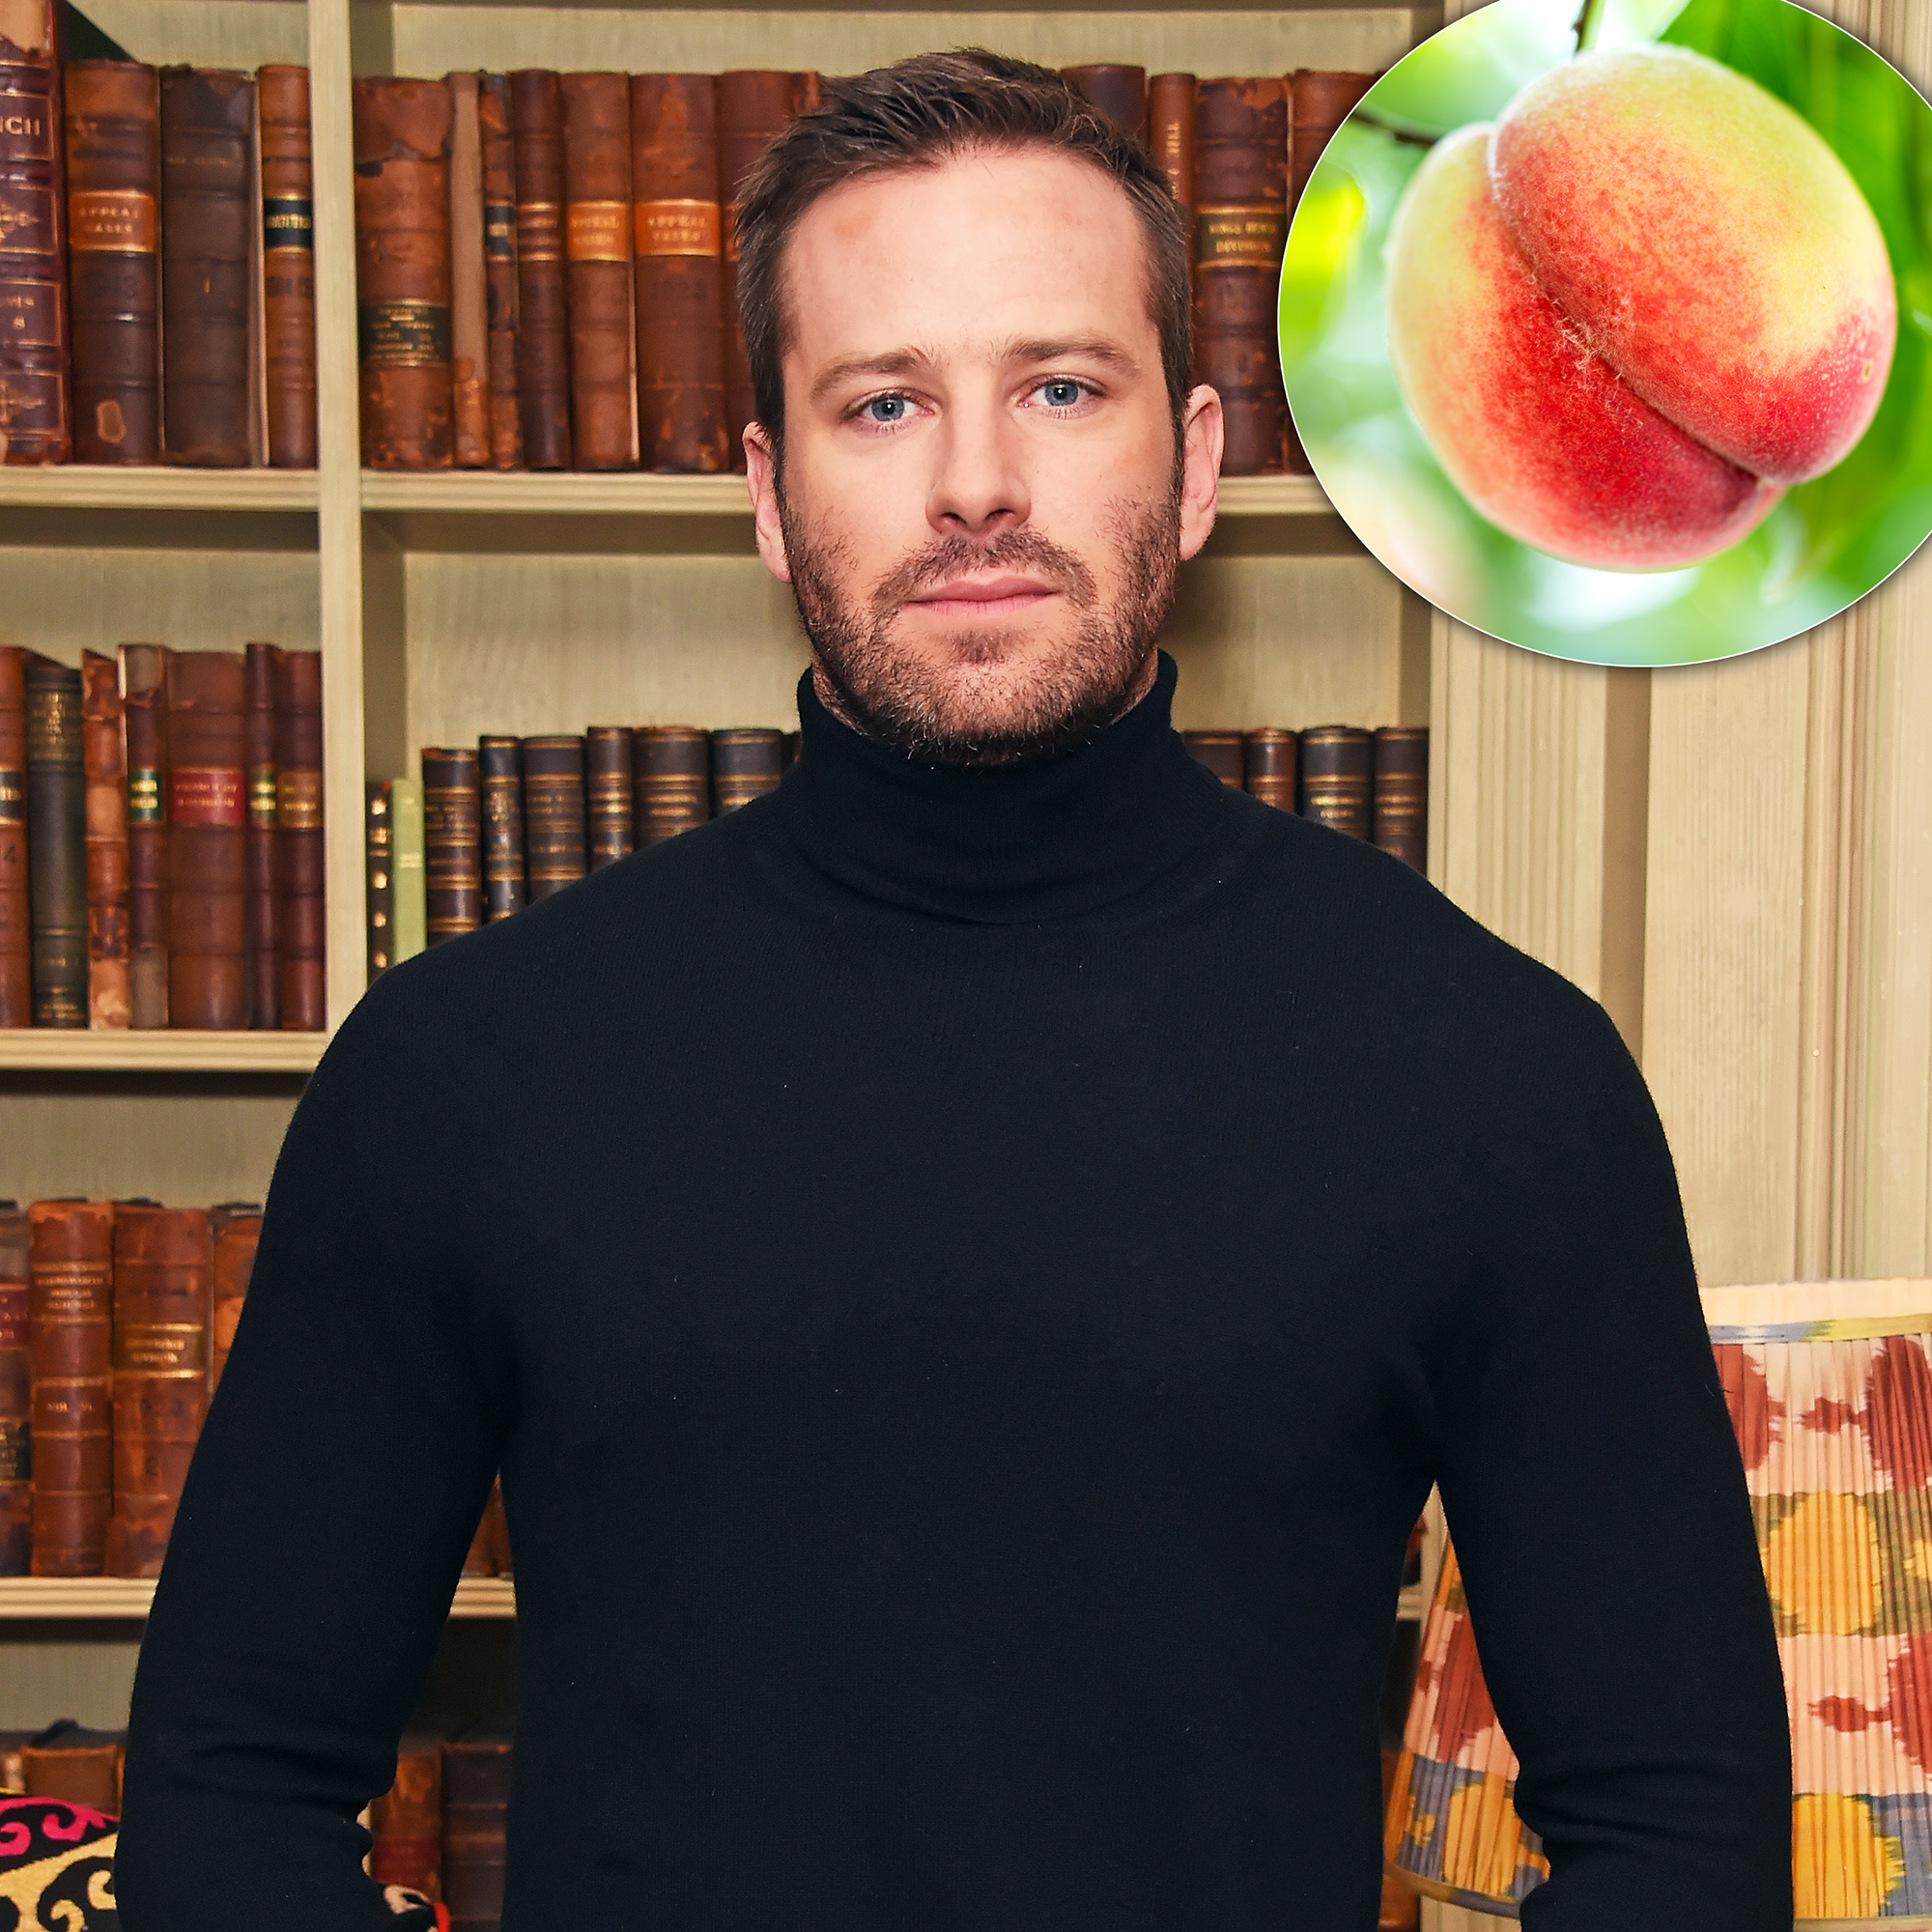 People Won't Stop Giving Armie Hammer Peaches After That 'Call Me By Your Name' Scene - Armie Hammer